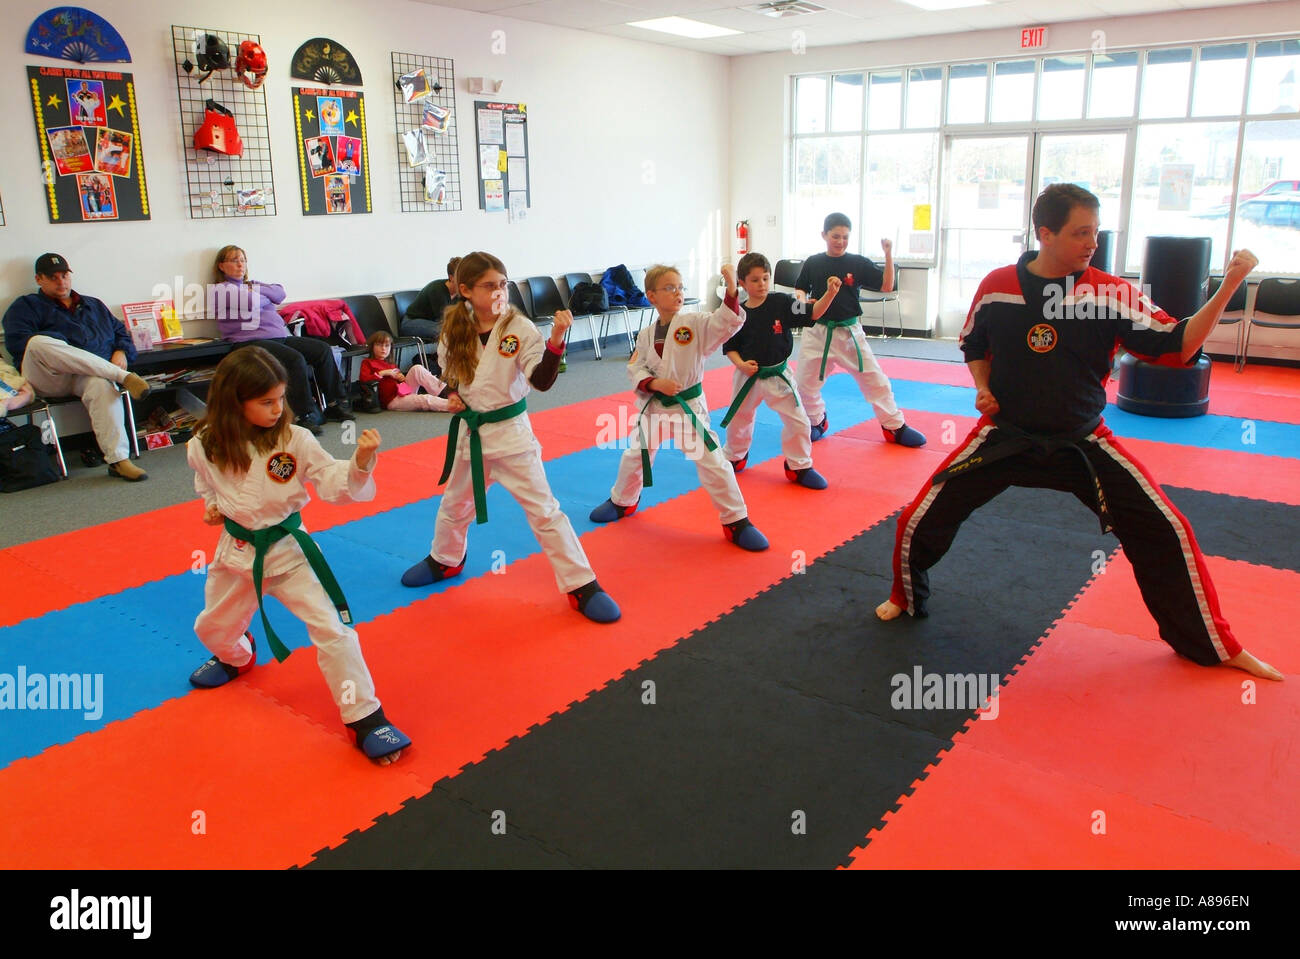 usa-a-martial-arts-tae-kwon-do-class-at-the-black-belt-academy-dominion-A896EN.jpg